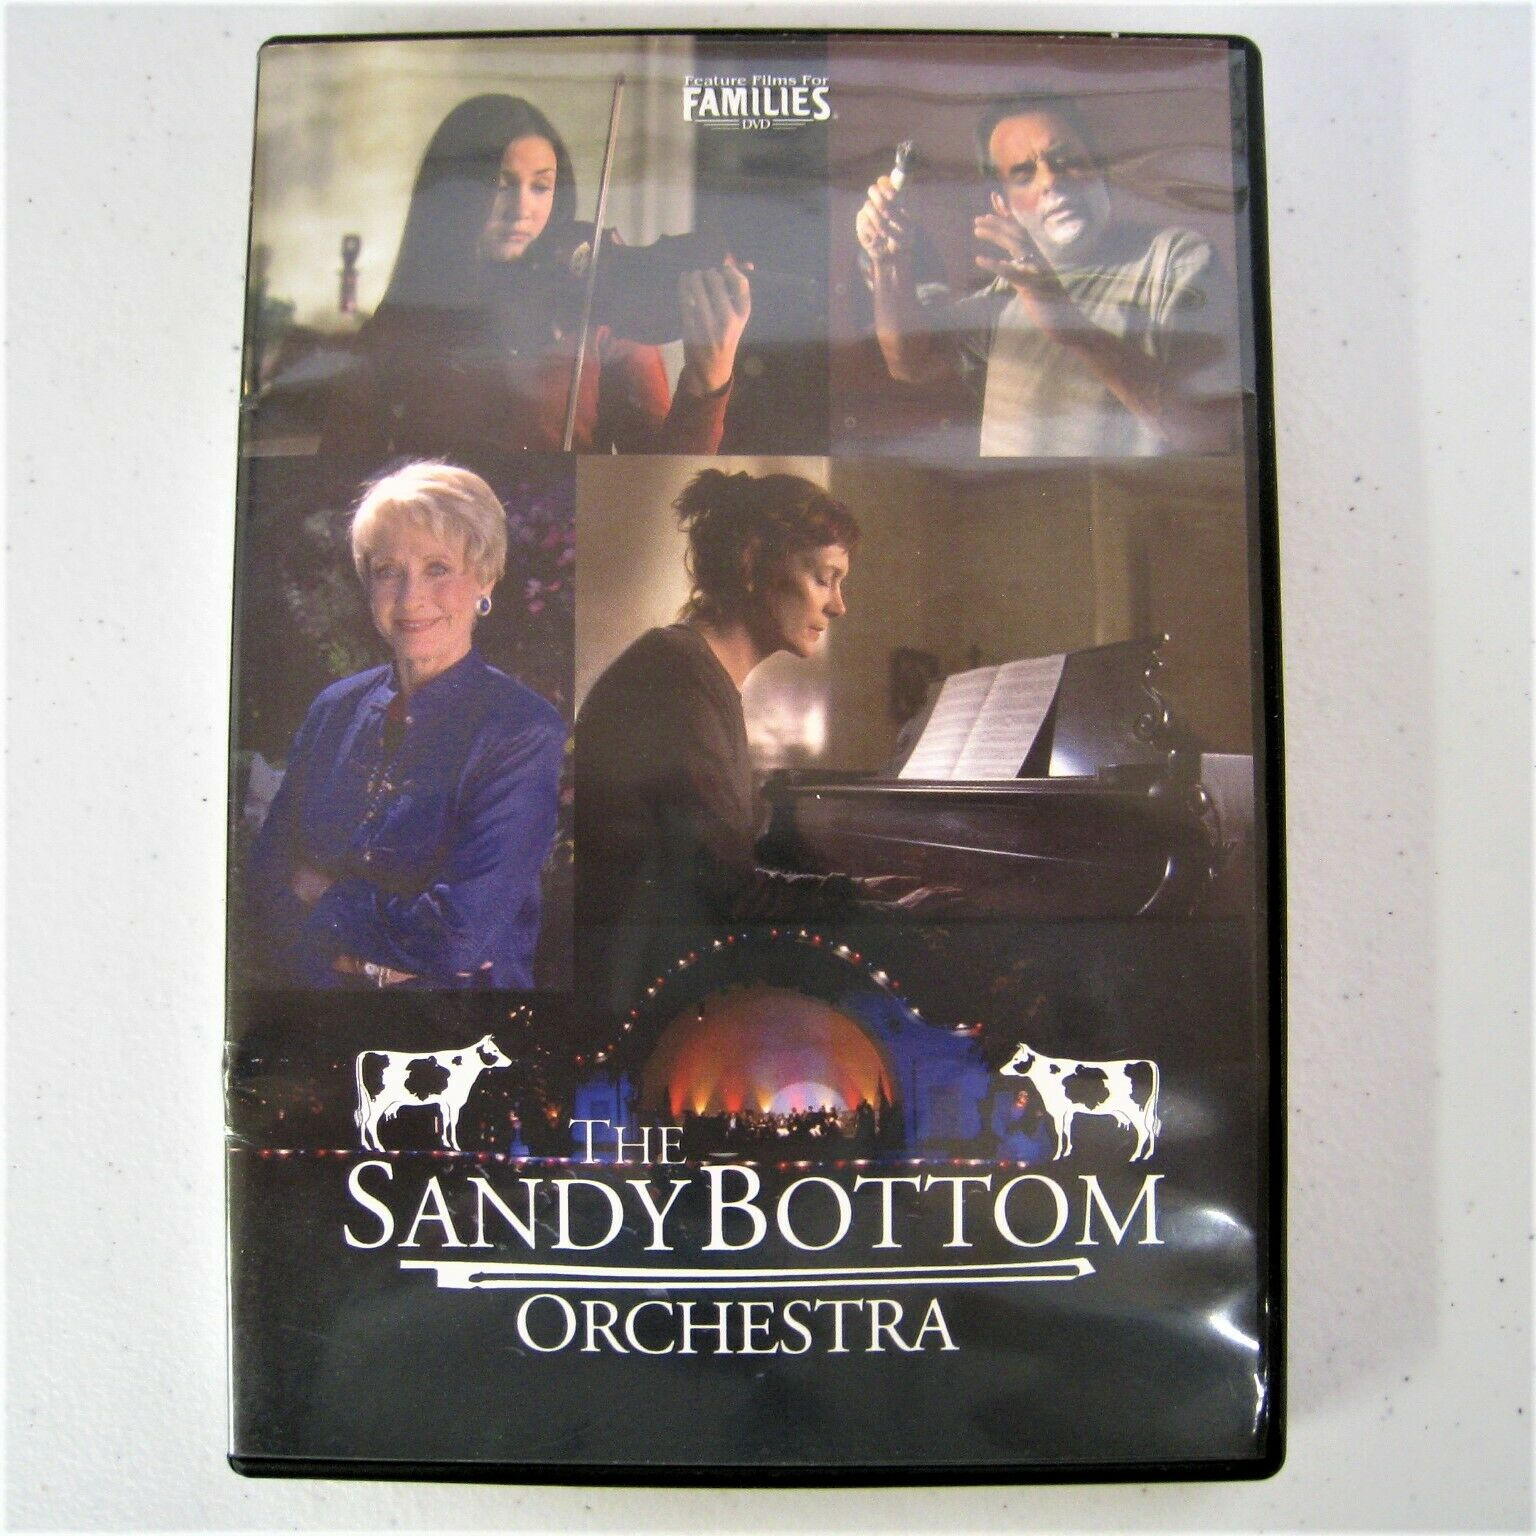 The Sandy Bottom Orchestra (VHS, 2002)